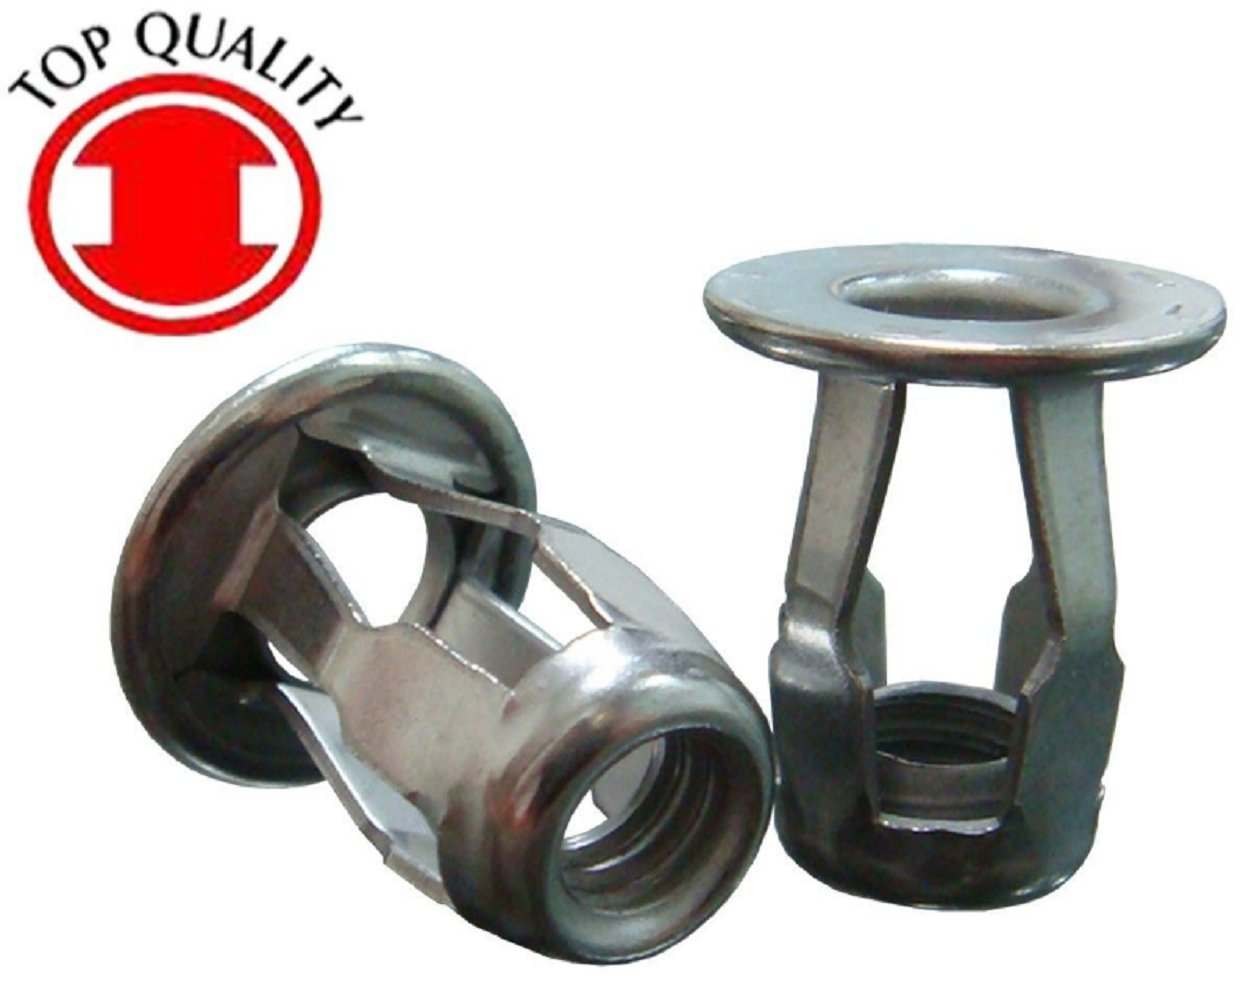 hardware ever blinds slot t furniture drop nuts in blind industrial limited sheet hammer nut steel archives products metal v for sliding connector stainless category